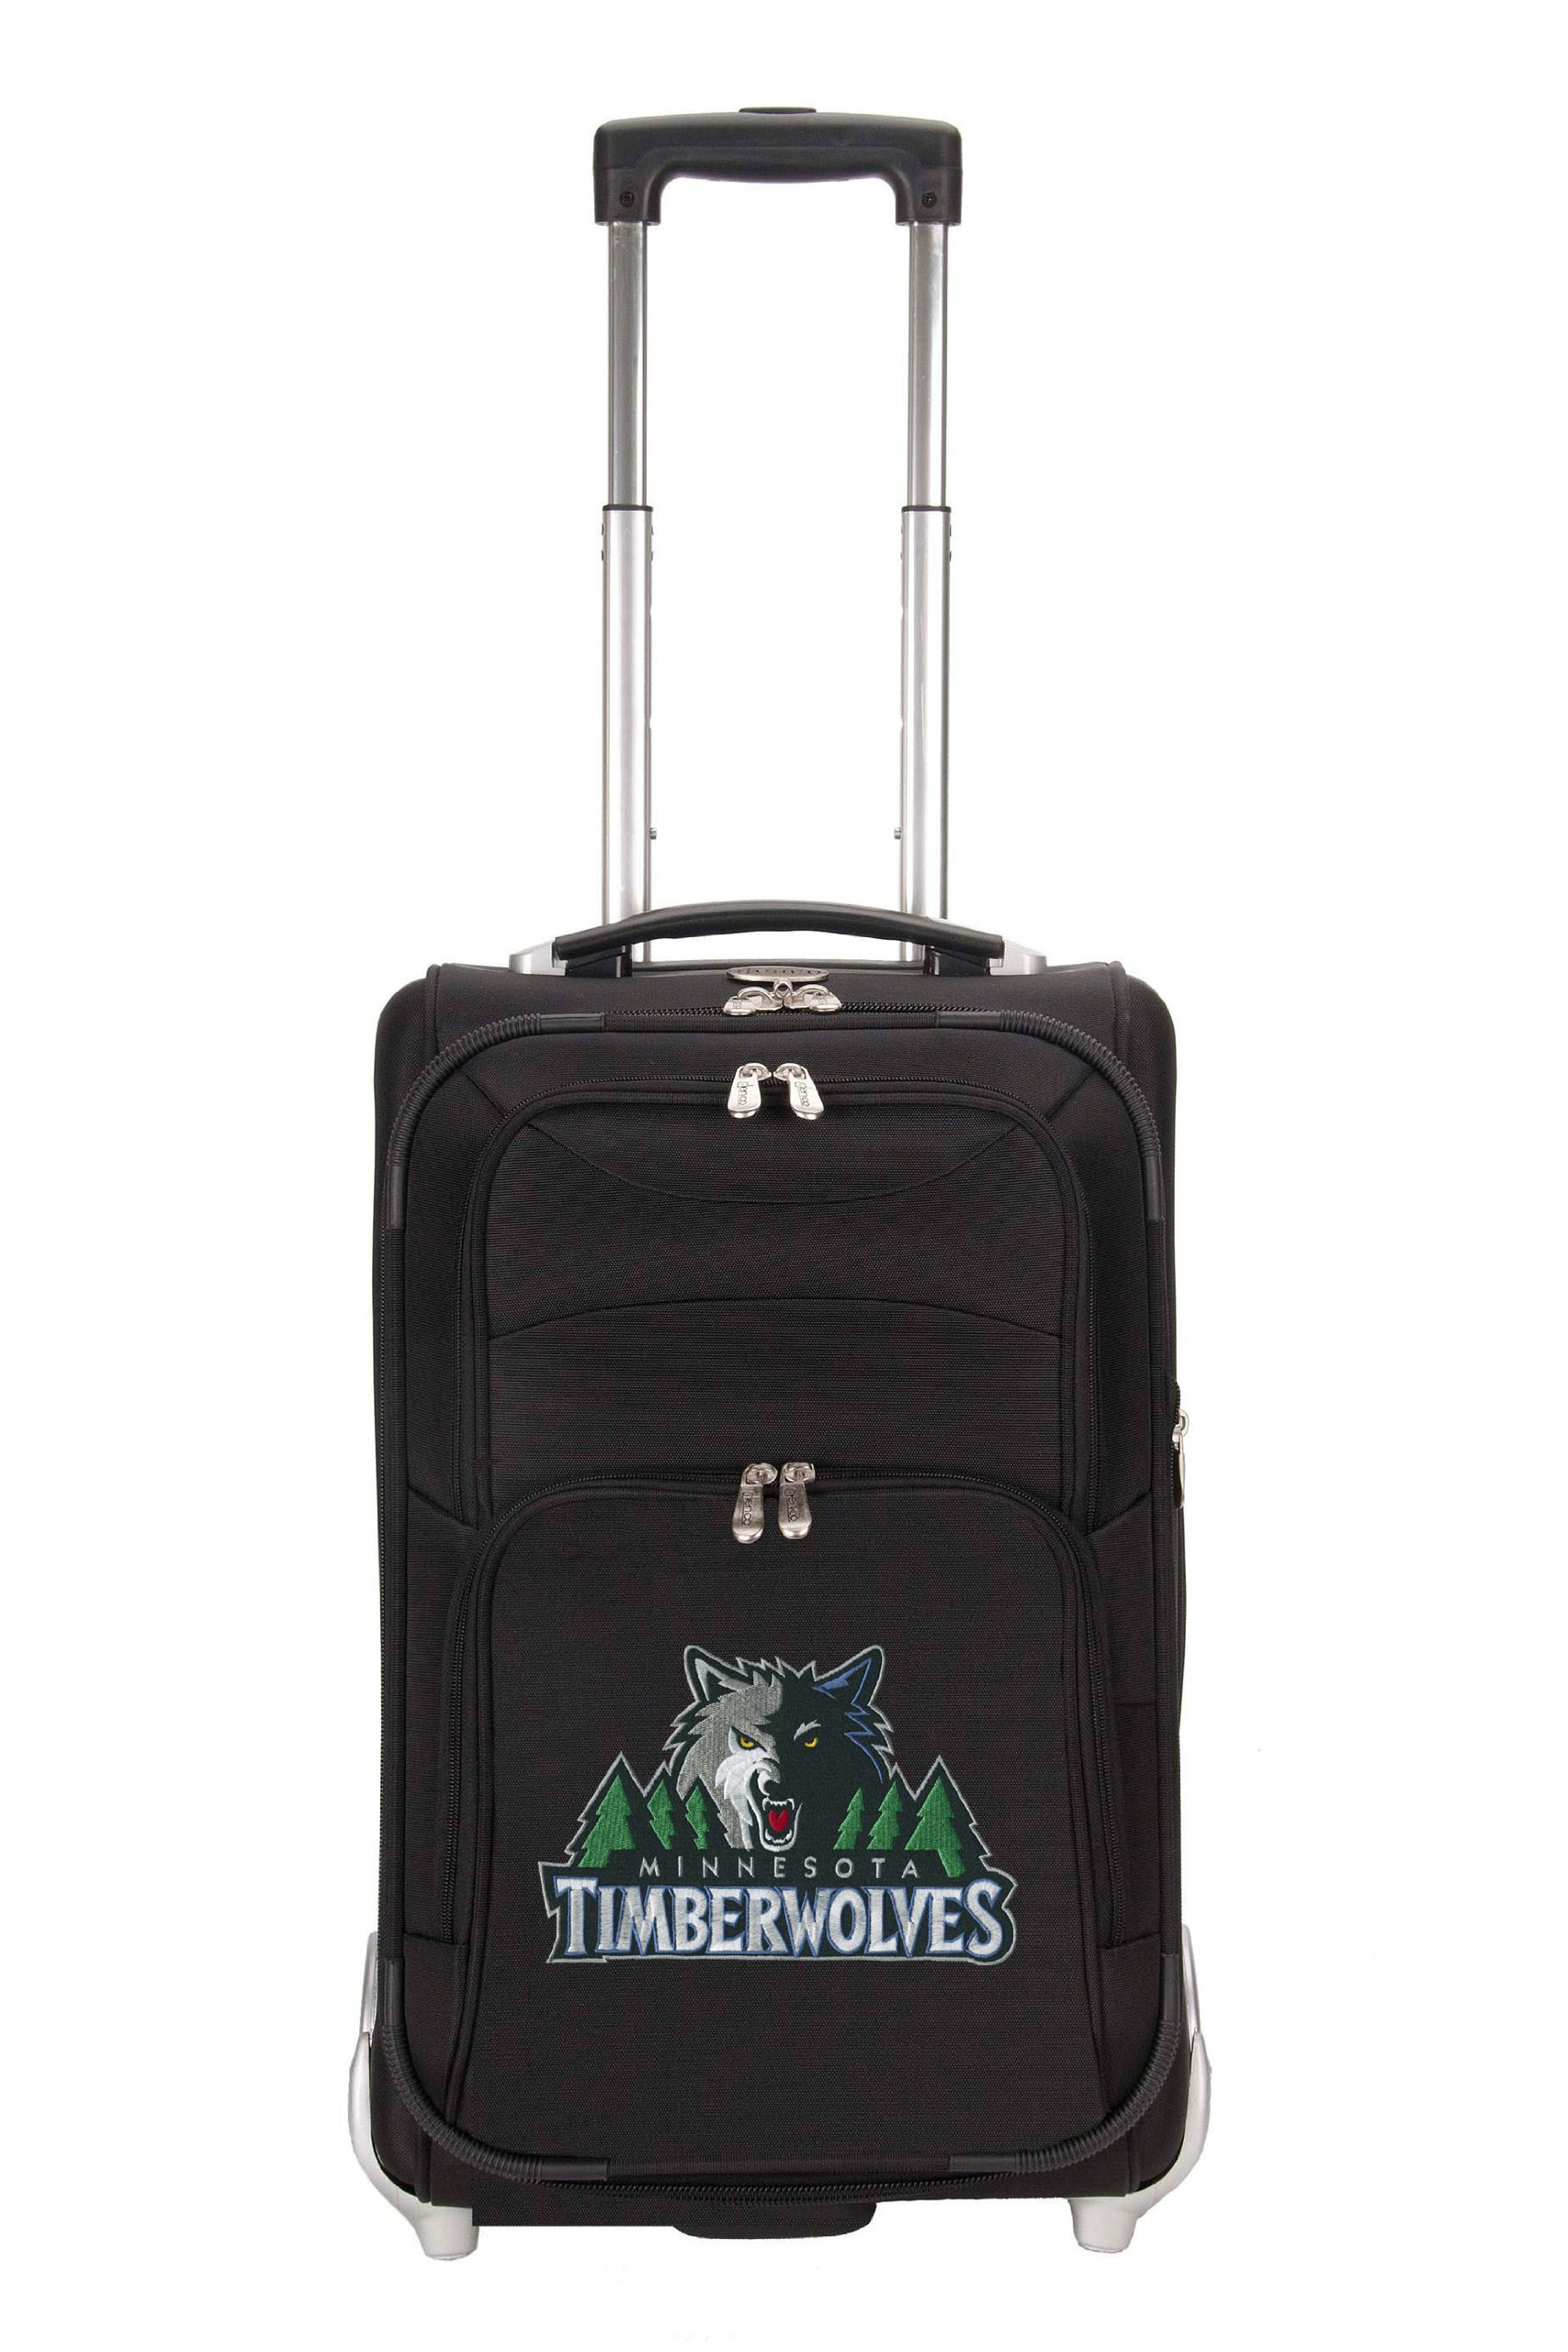 NBA Minnesota Timberwolves Denco 21-Inch Carry On Luggage, Black by Denco